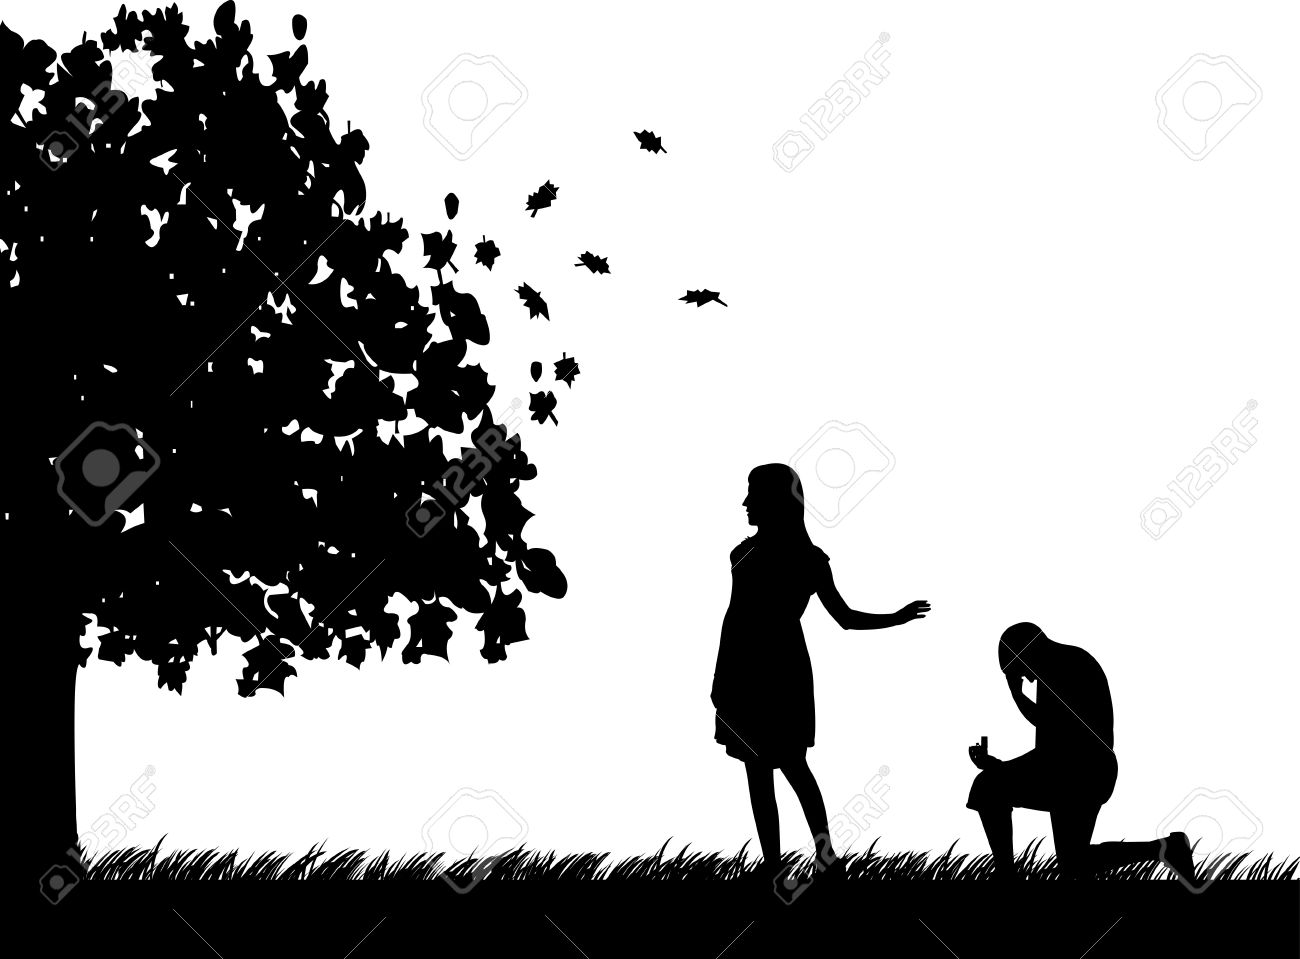 Man begs girlfriend, girl refuses marriage proposal in park in autumn or fall silhouette Stock Vector - 15314202